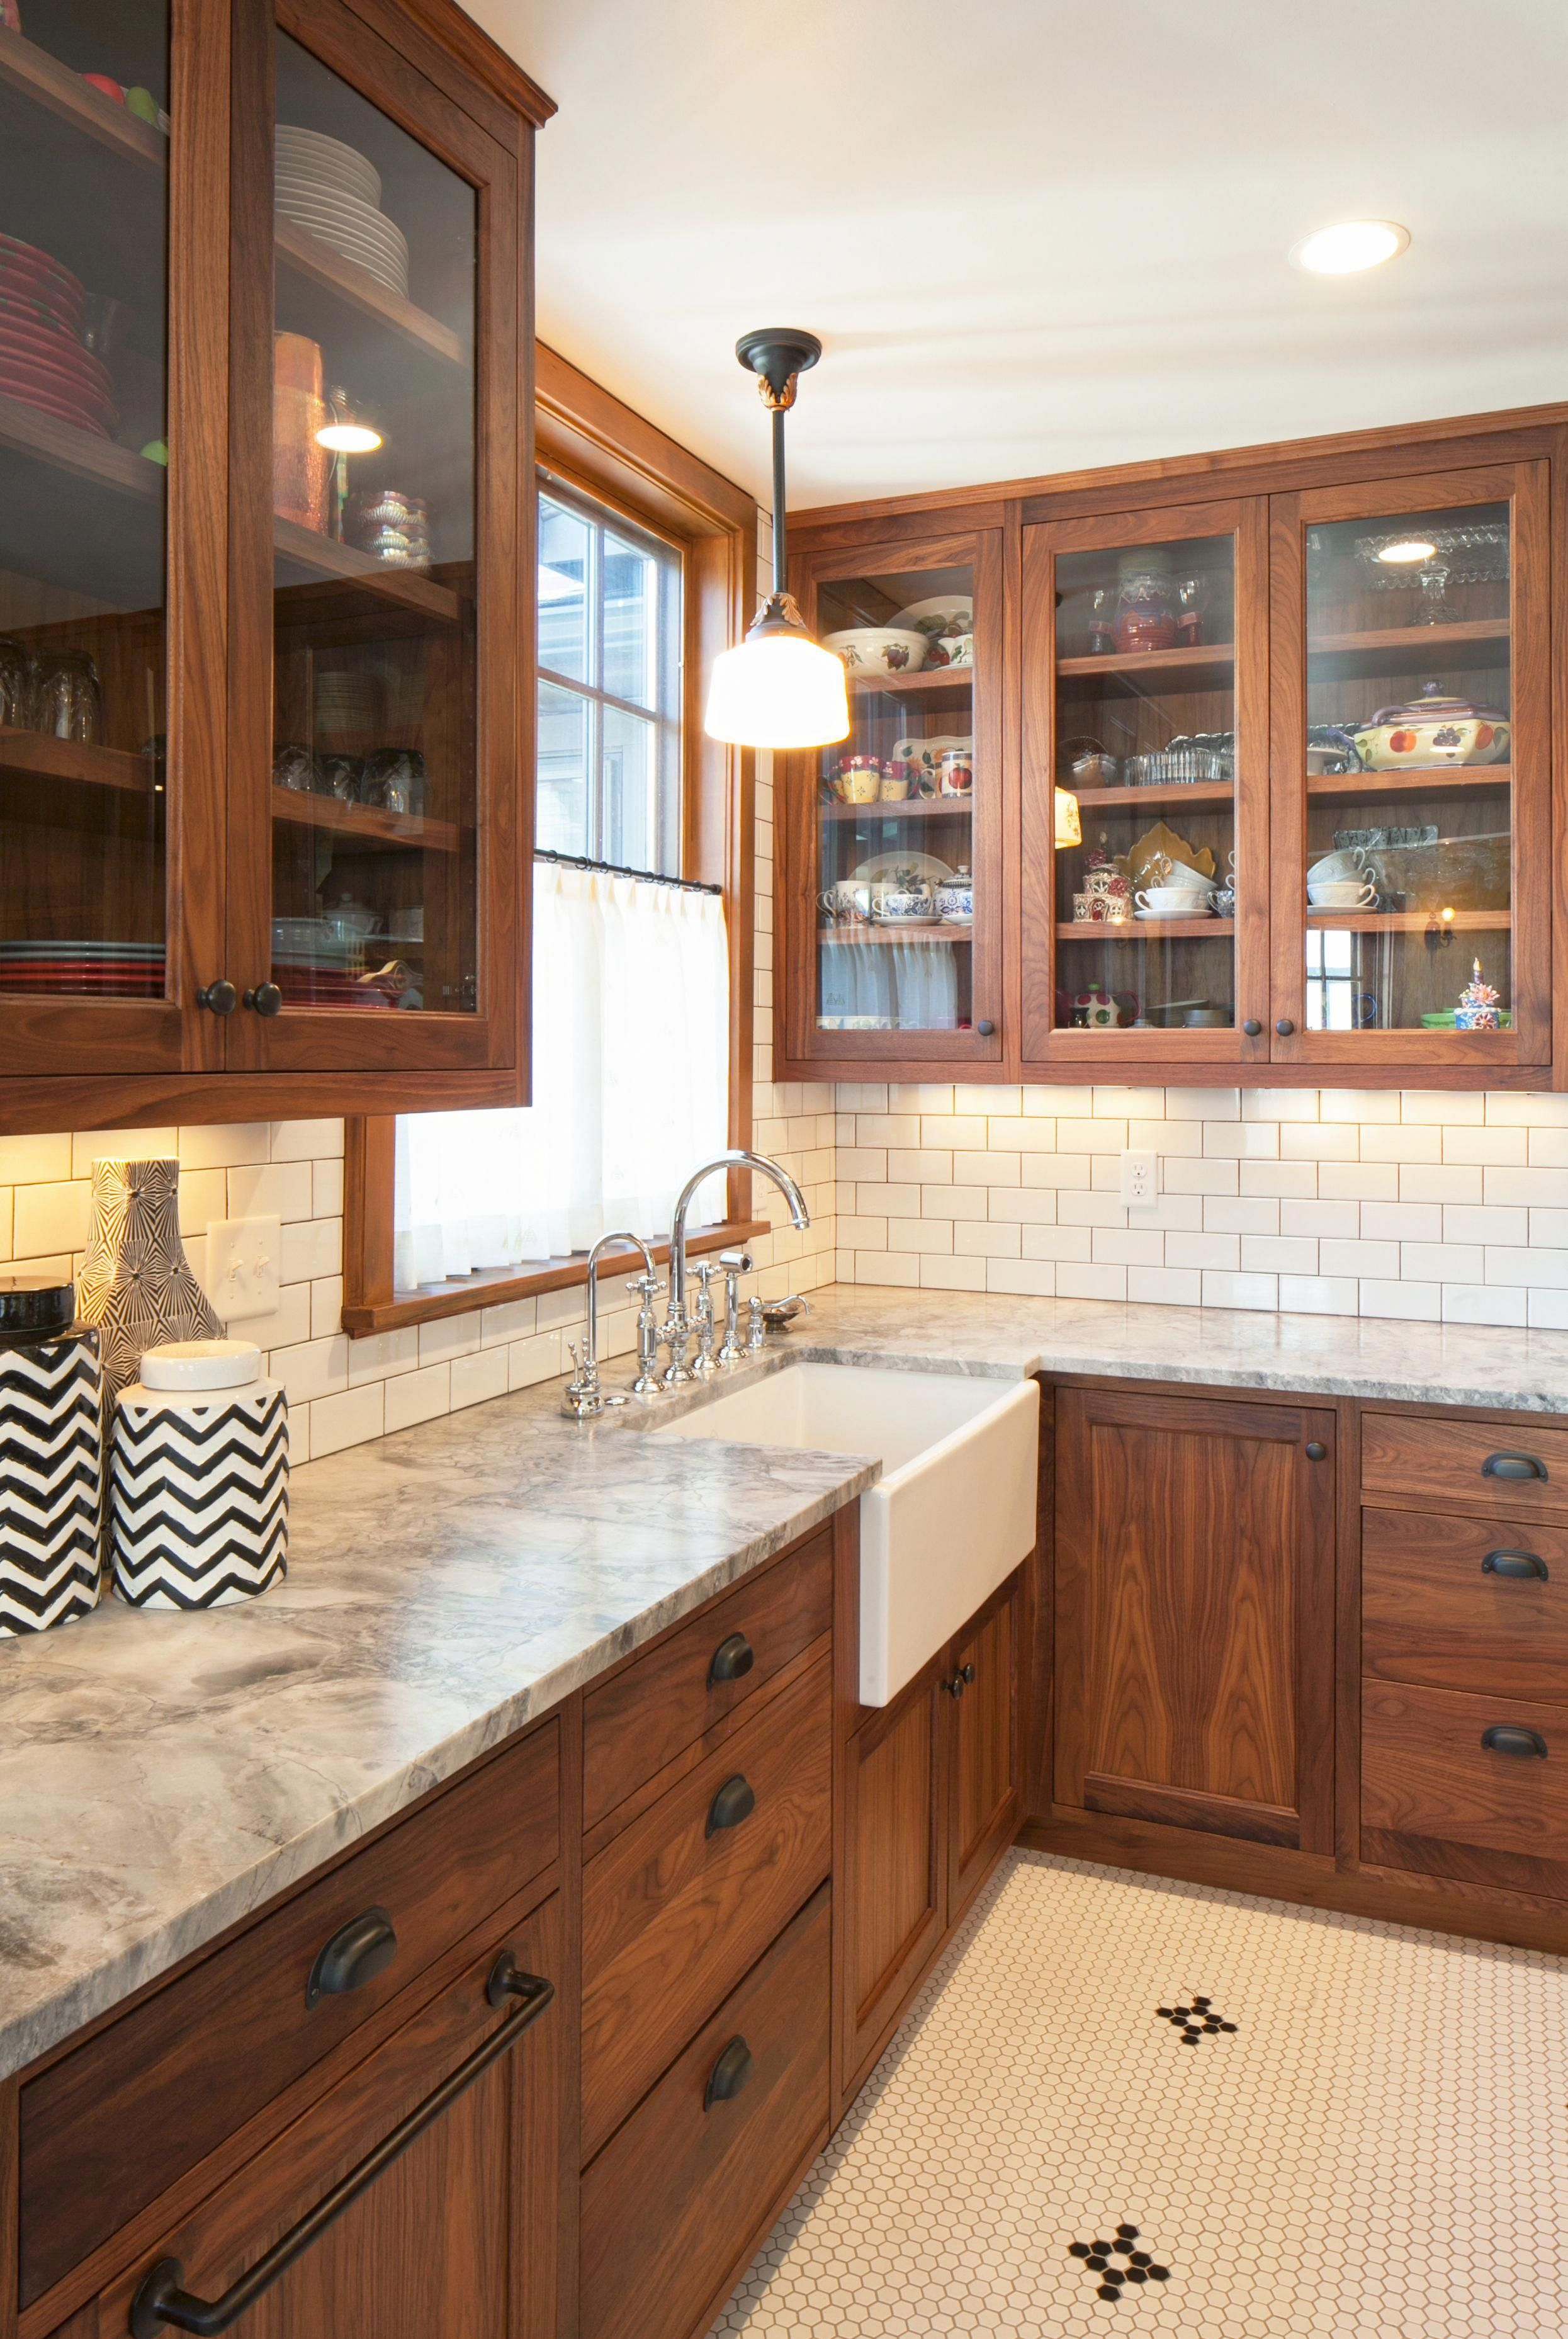 7 Creative Subway Tile Backsplash Ideas For Your Kitchen Kitchen